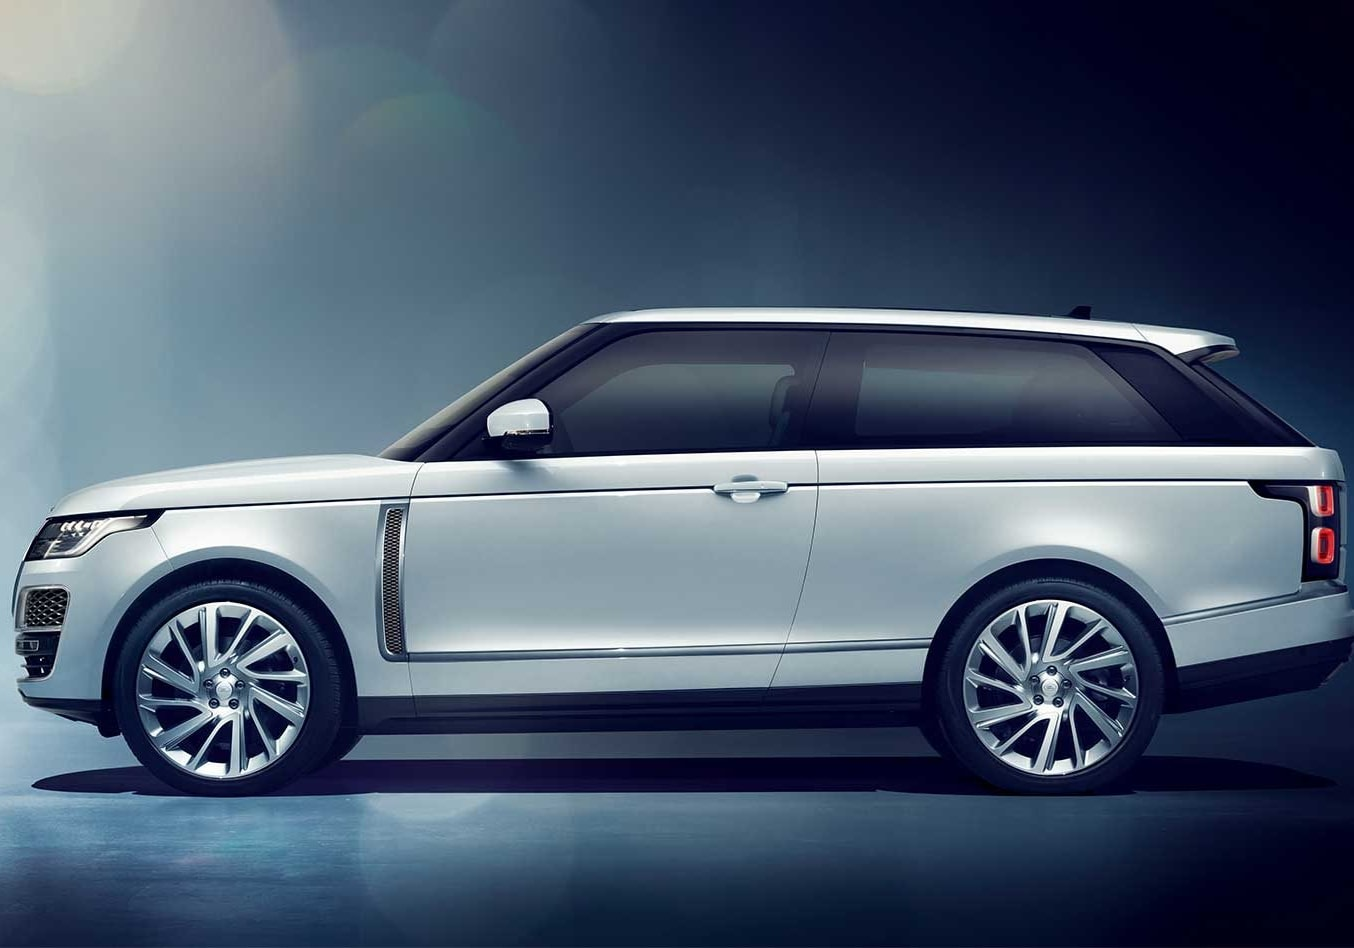 Range Rover SV Coupe side